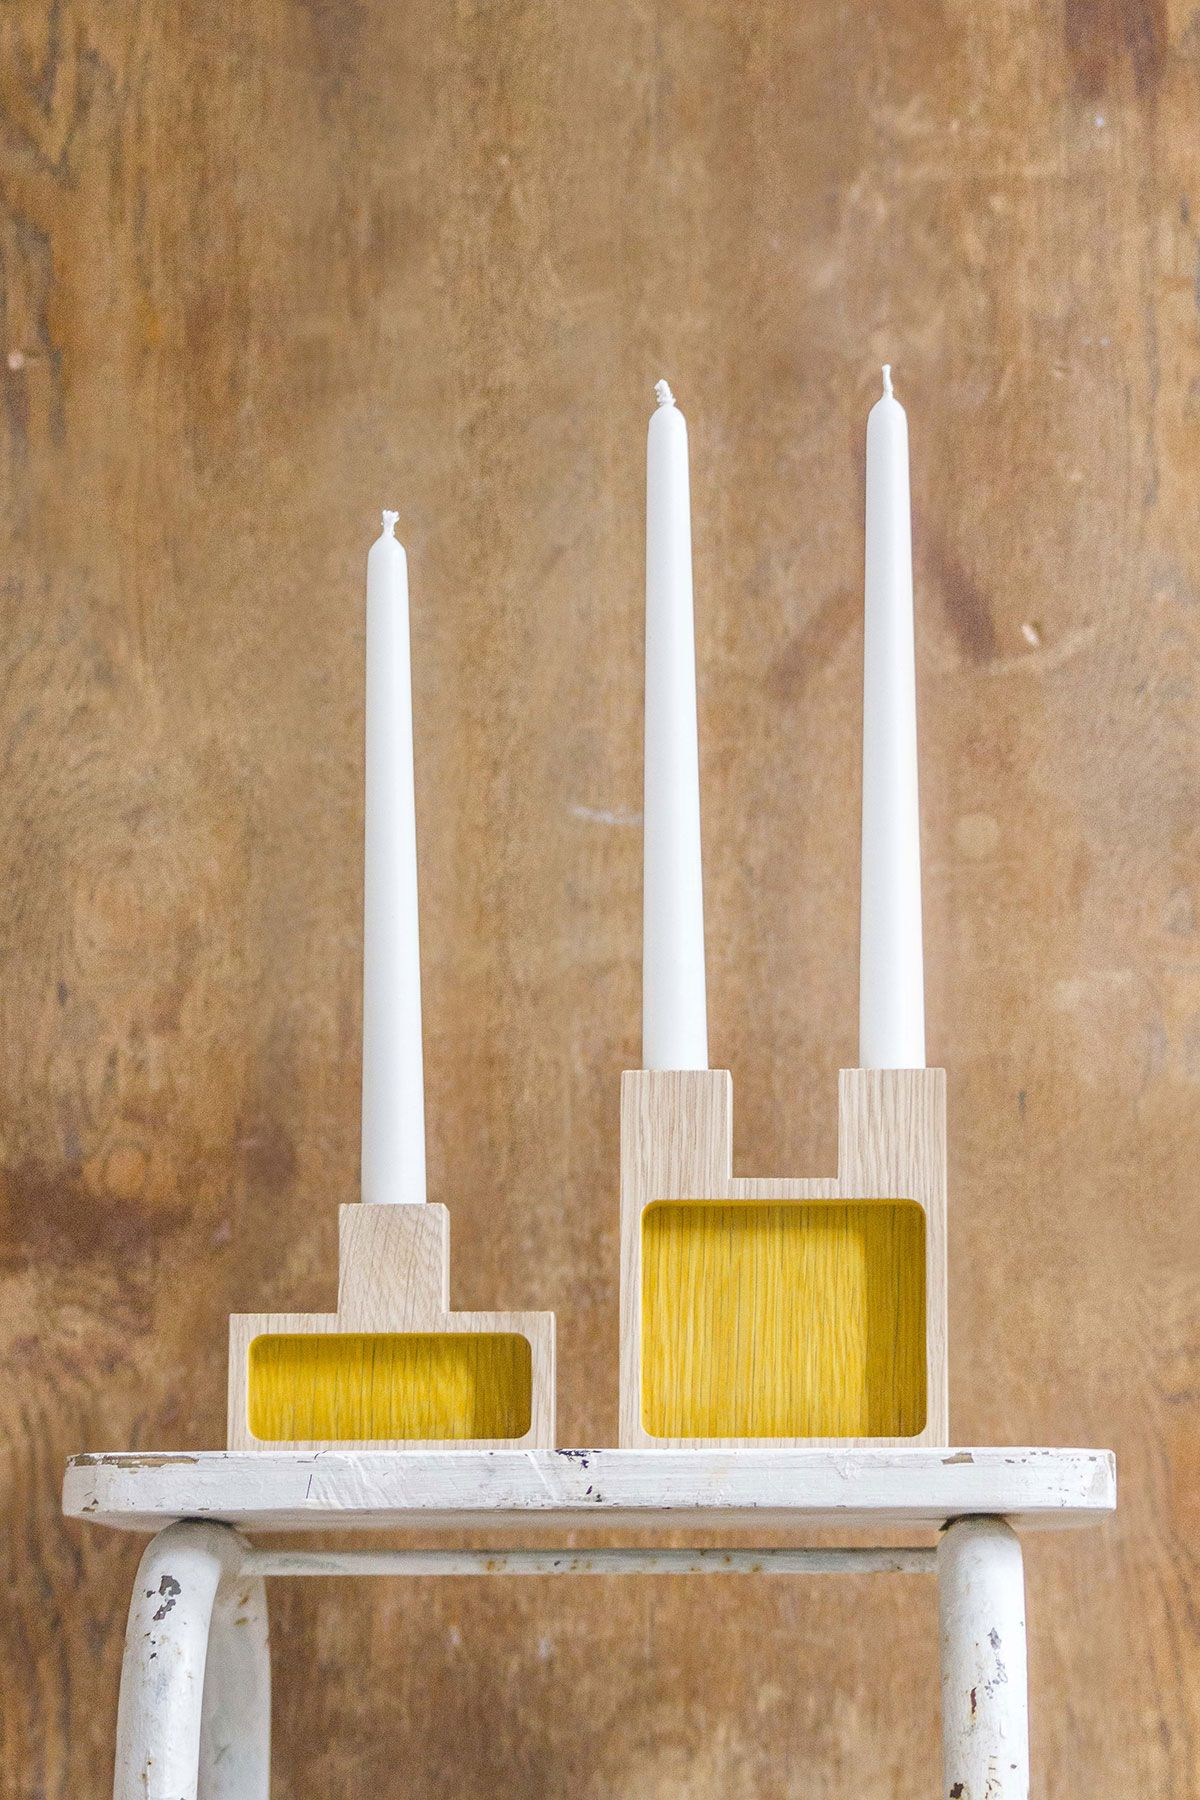 Join candleholder u small storage oak yellow natural turmerik dye